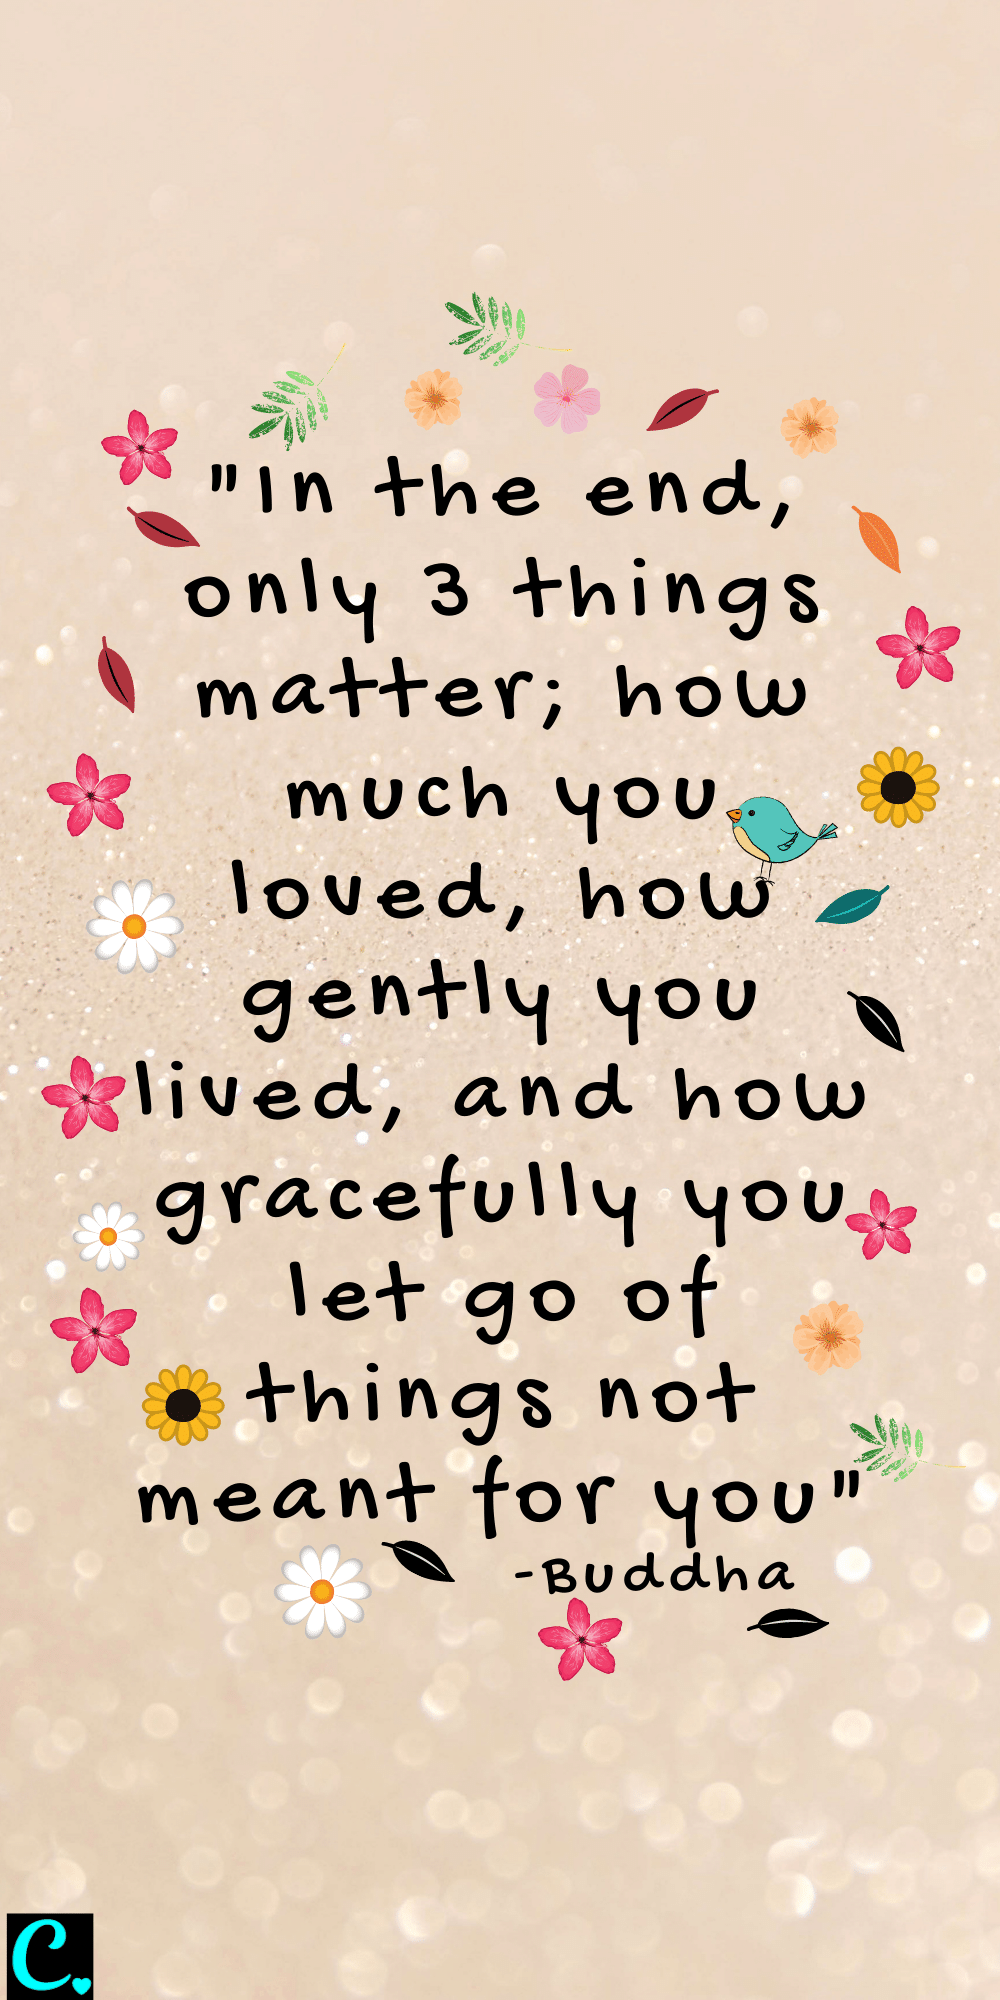 """""""In the end, only 3 things matter; how much you loved, how gently you lived, and how gracefully you let go of things not meant for you"""""""